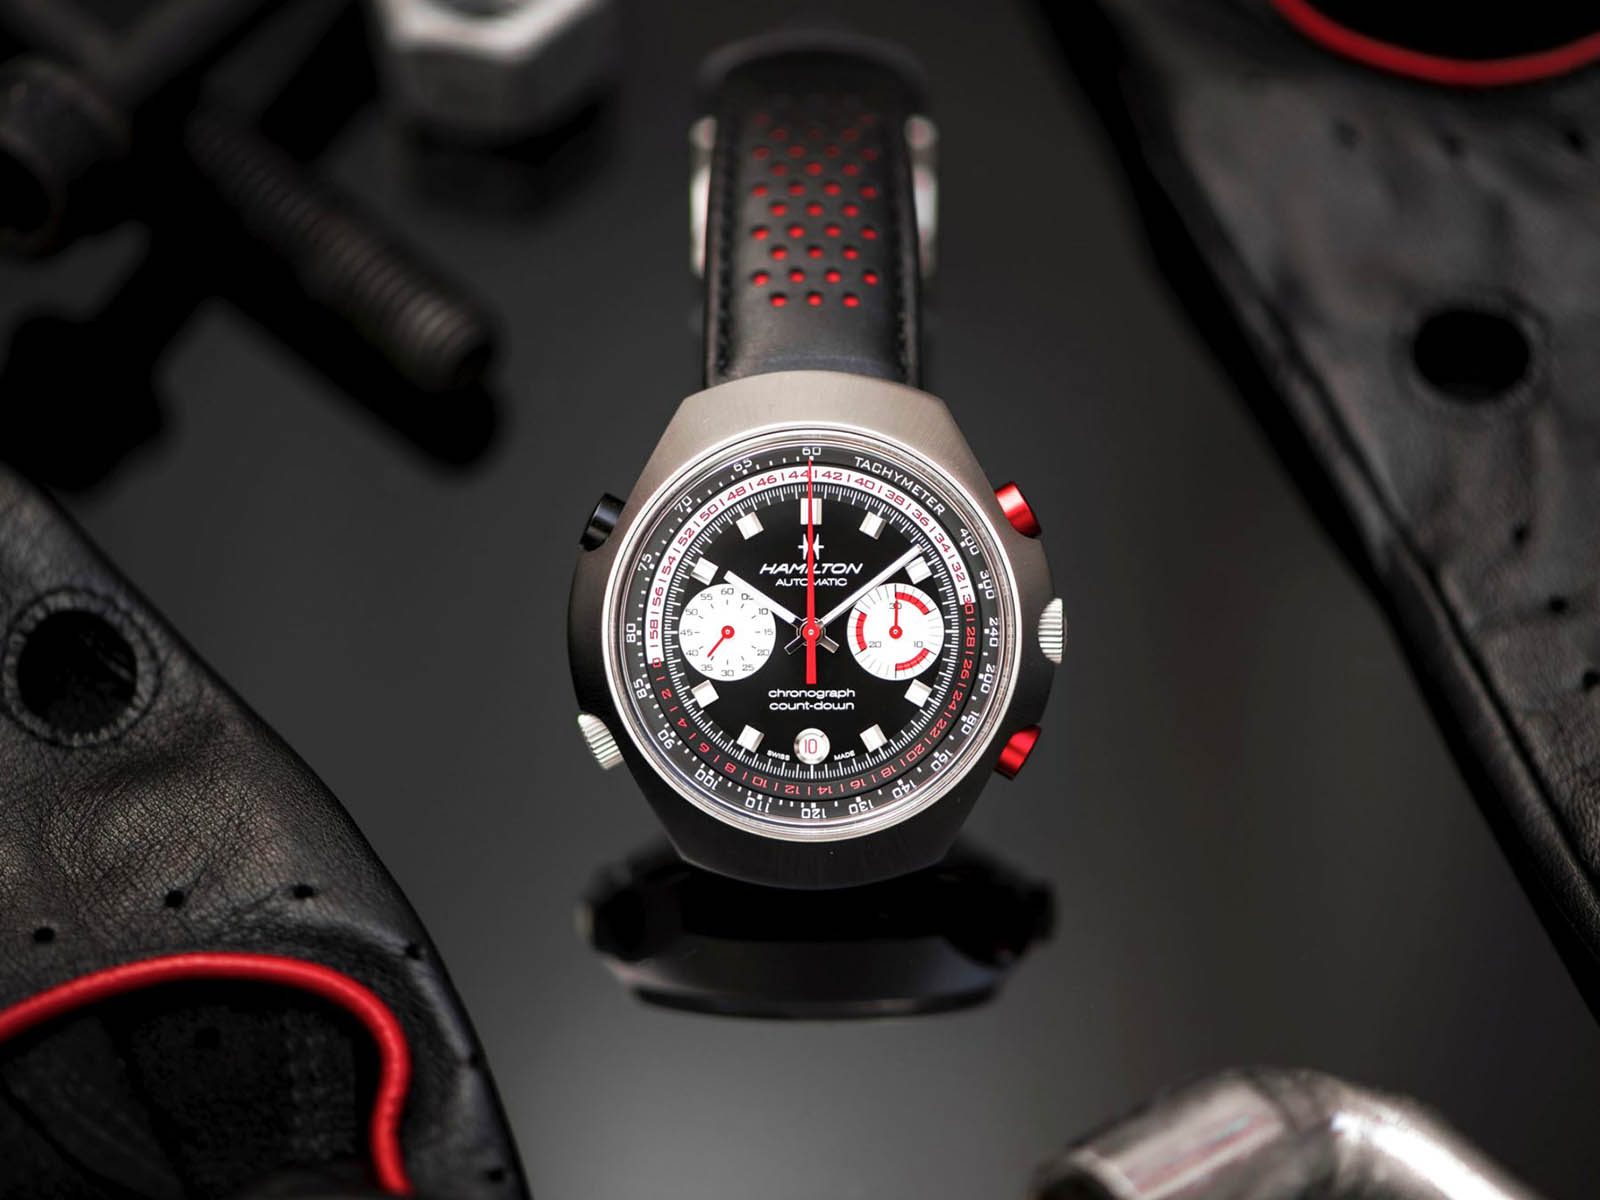 h51616731-hamilton-chrono-matic-50-auto-chrono-limited-edition-1.jpg